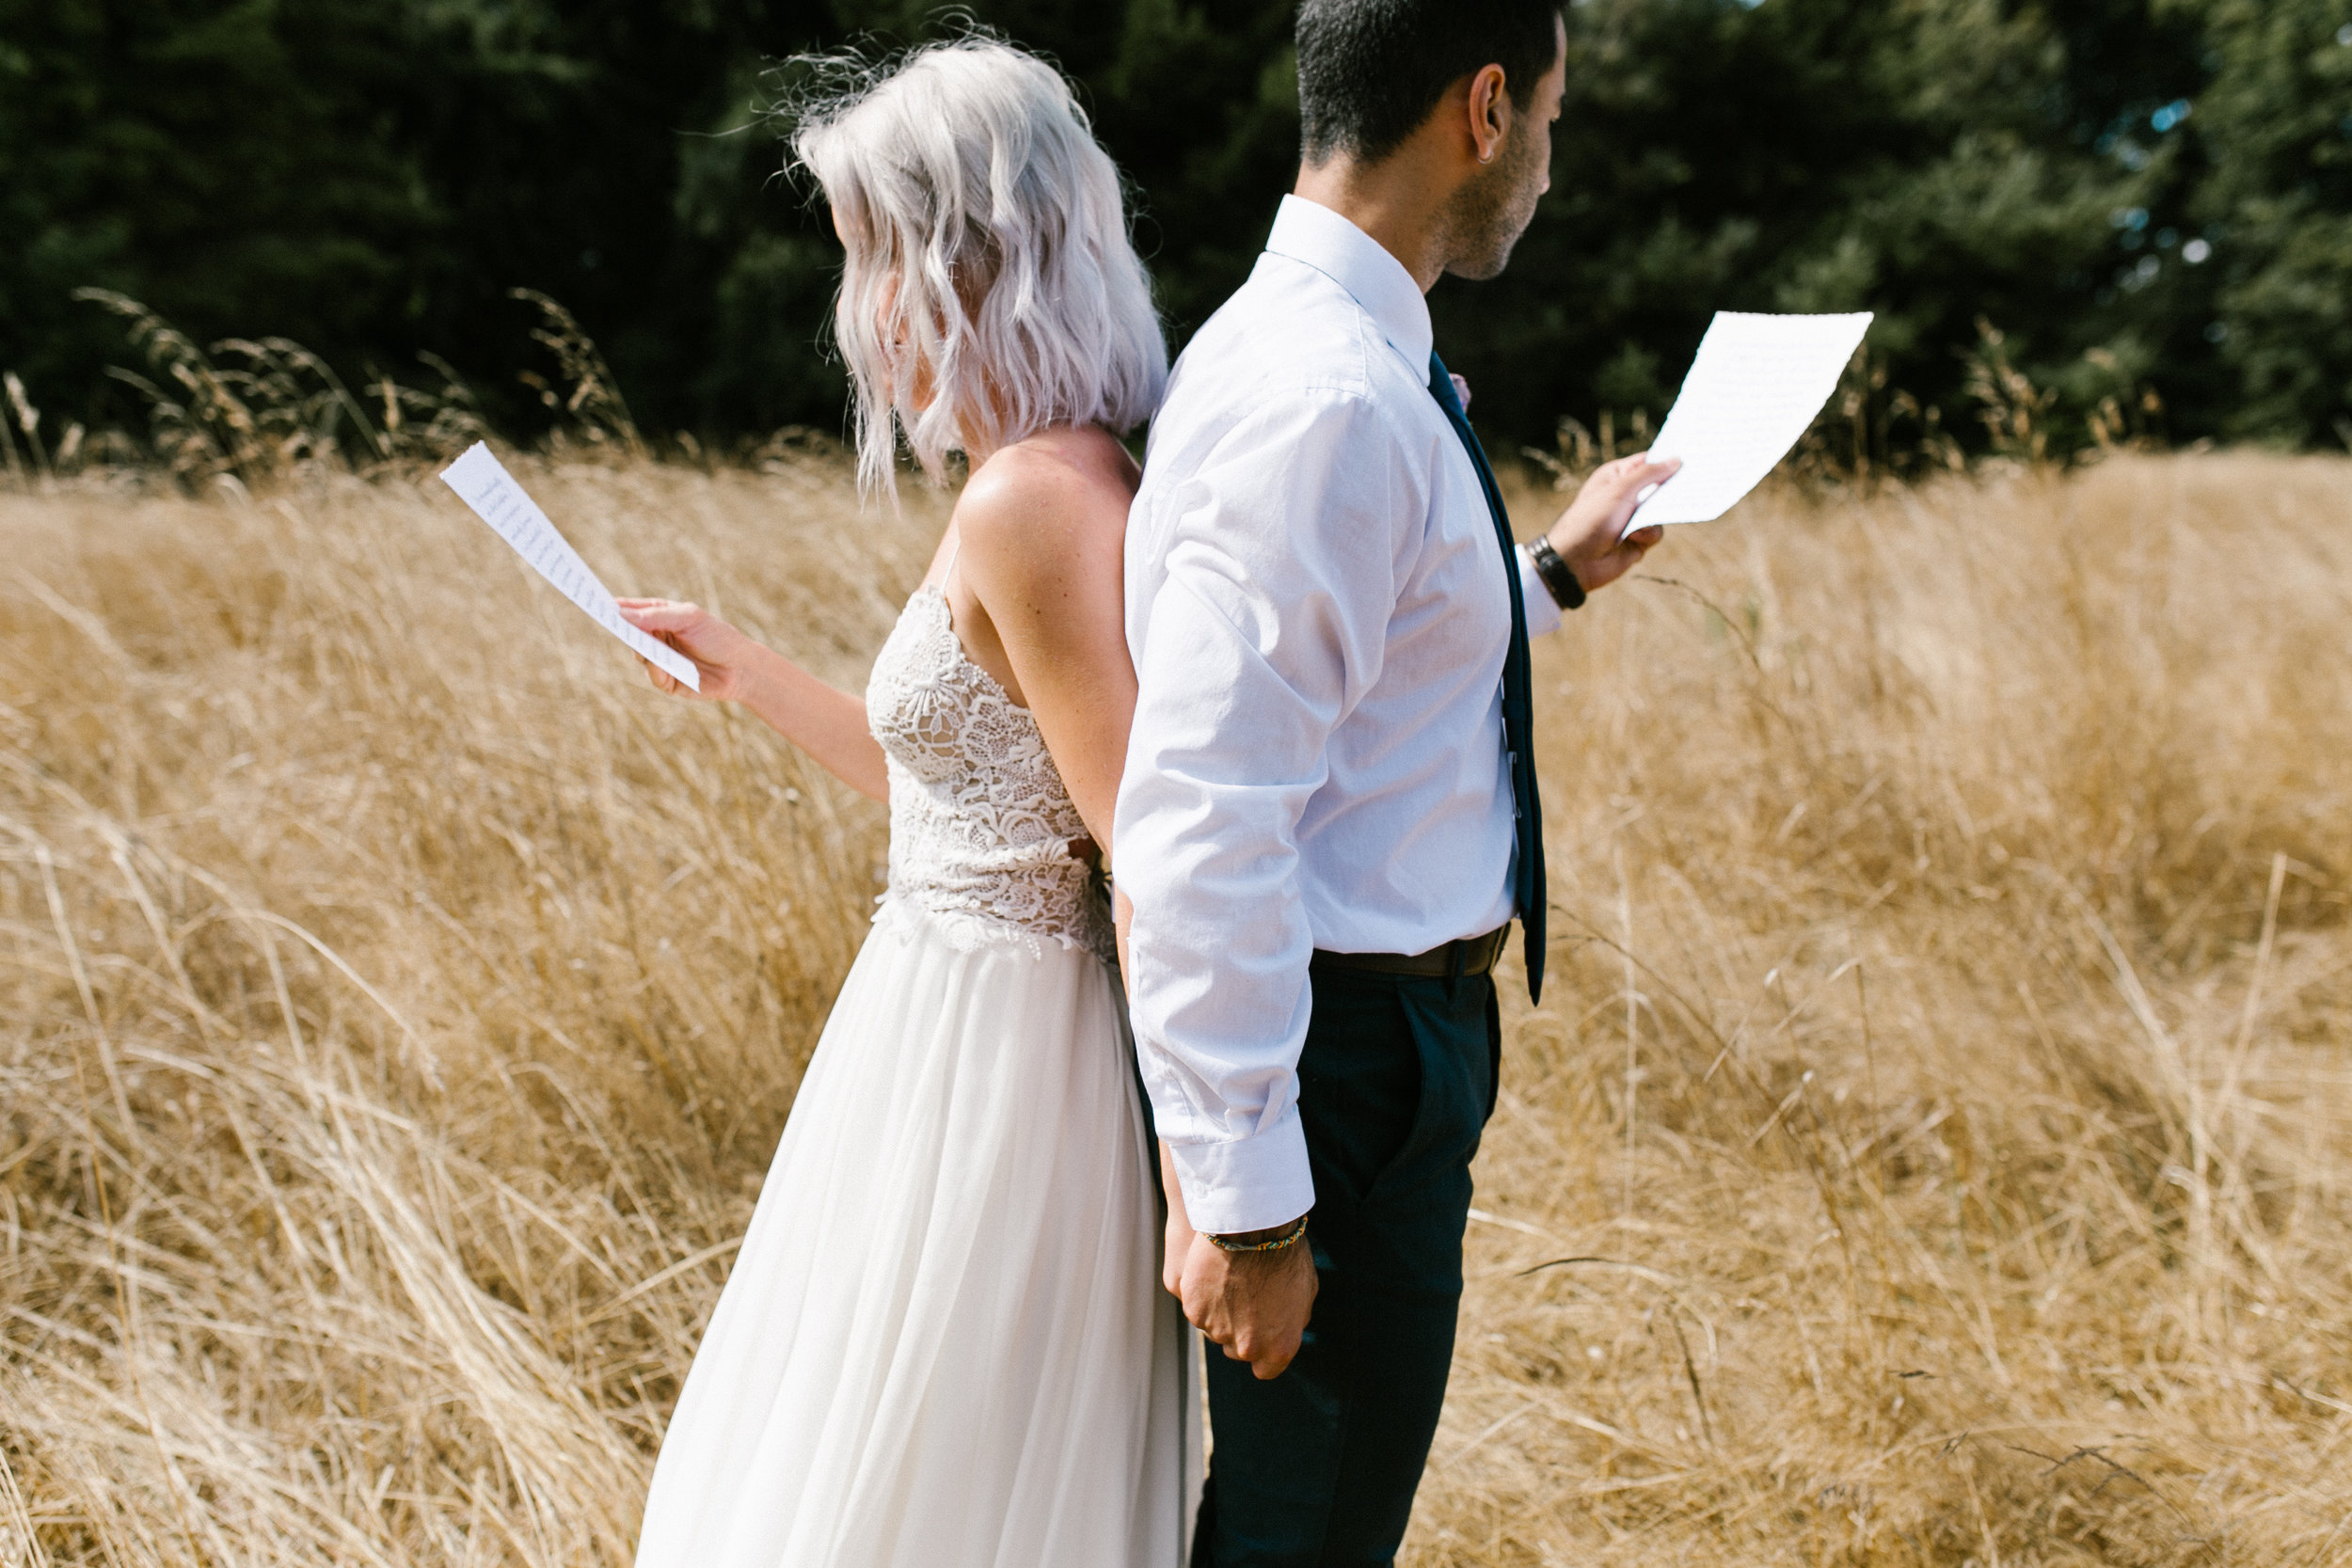 junebug weddings - Blue Ombré Wedding Inspiration from The Big Fake Wedding Seattle